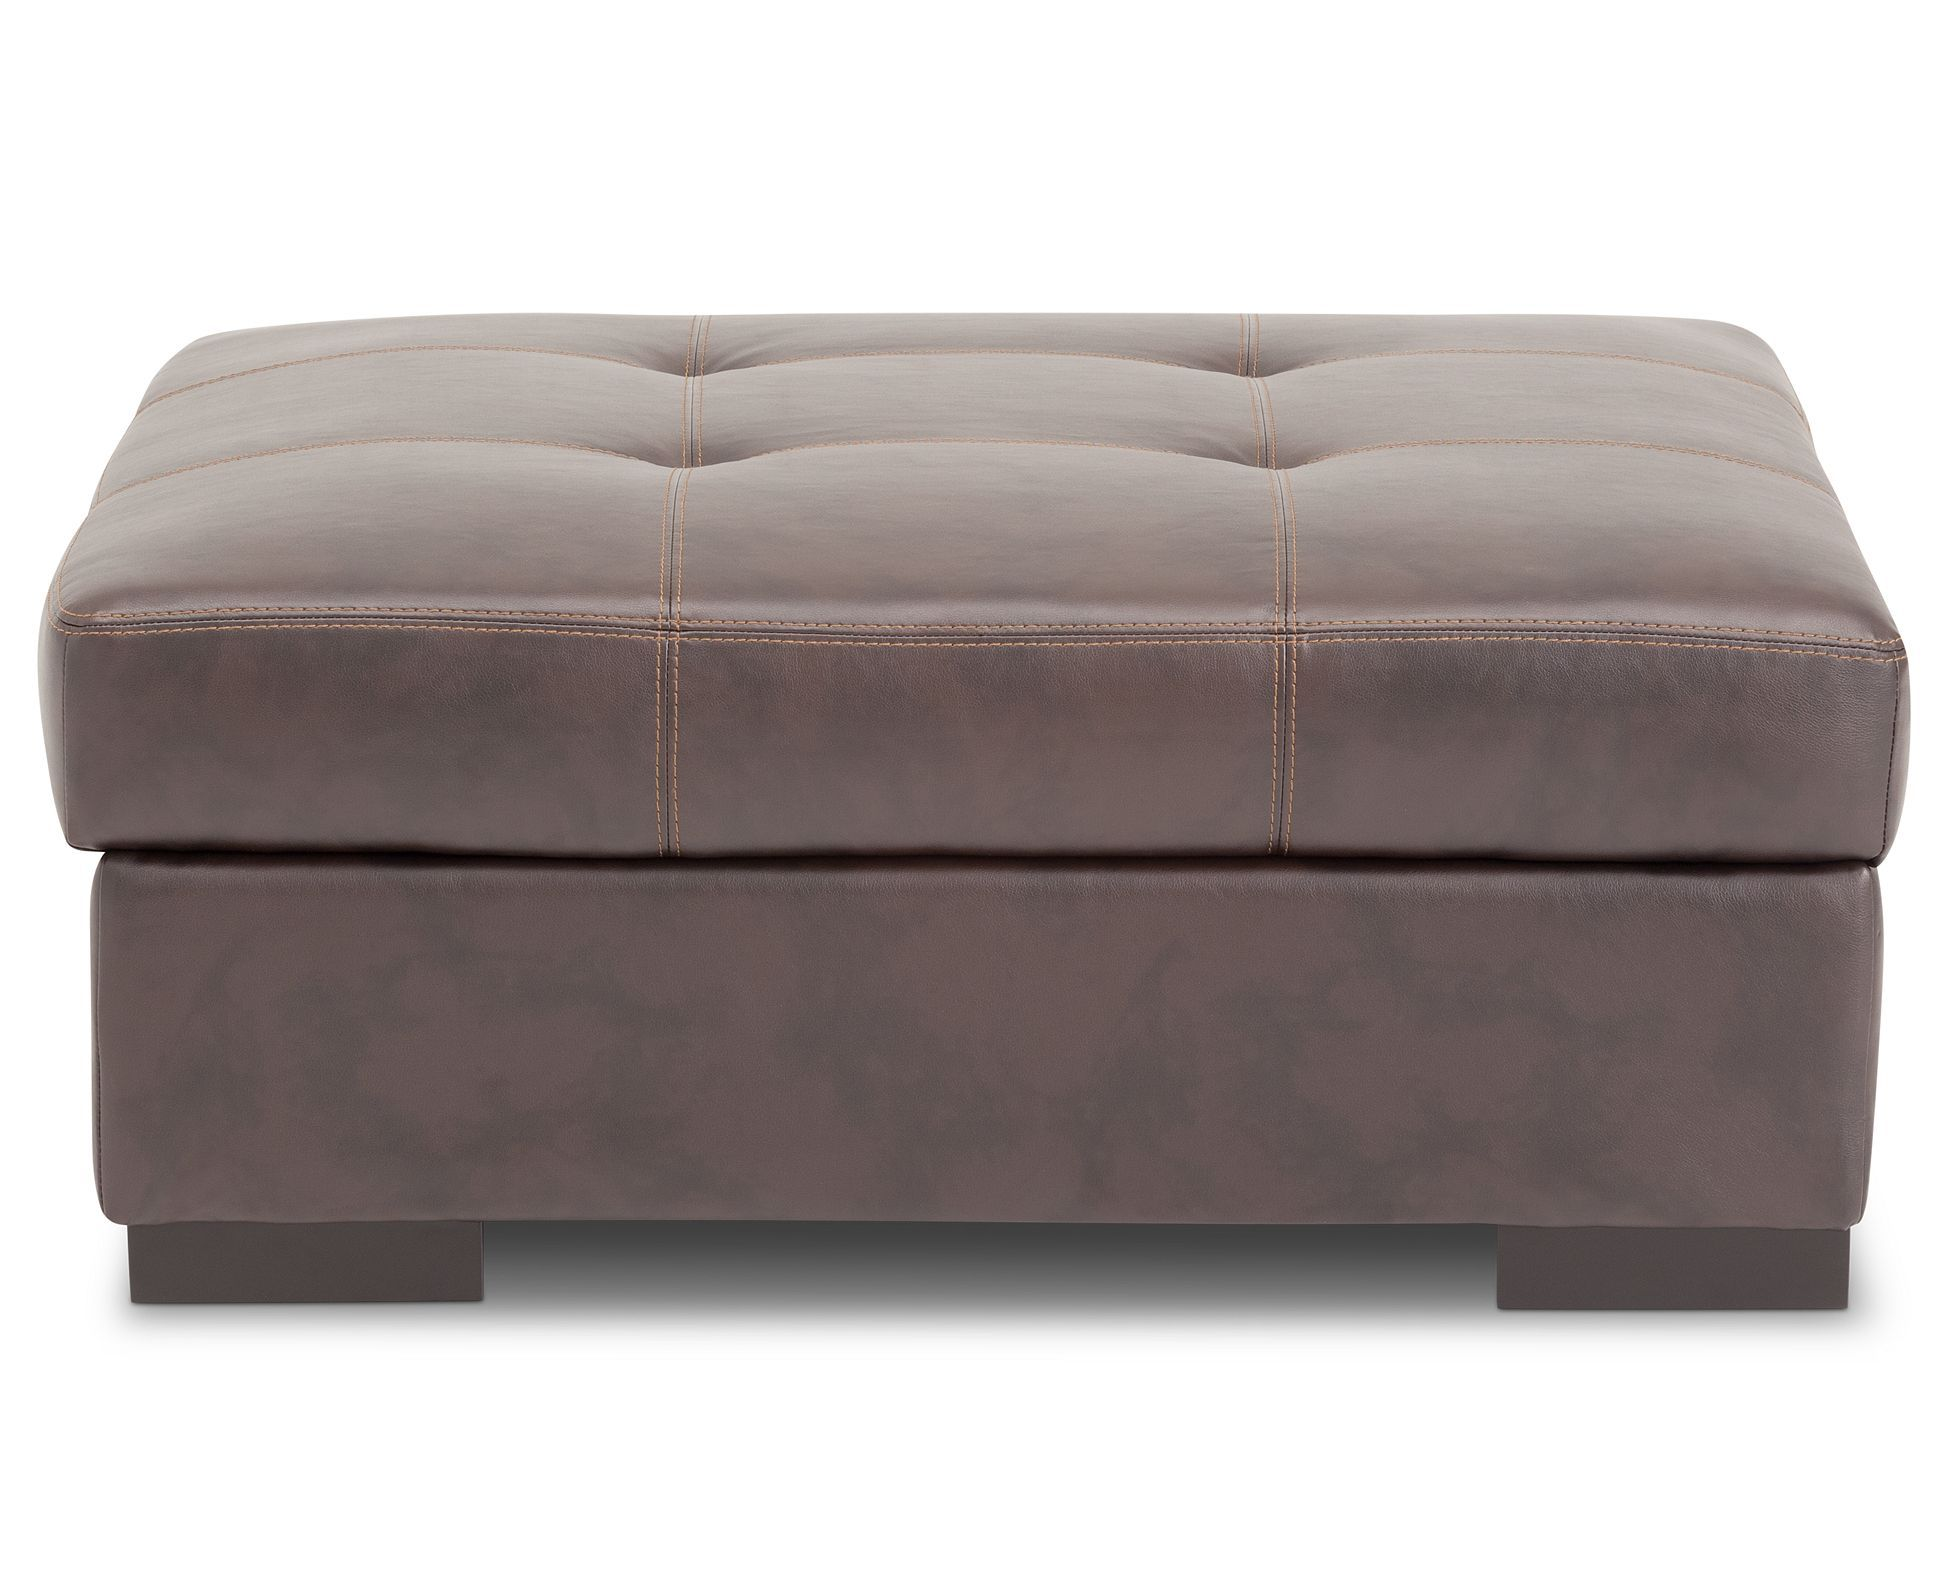 Oversized Storage: Barron Storage Ottoman In Rustic Brown Faux Leather Lets  You Keep Your Belongings Hidden In Style And Can Function As A Coffee Table  Or ...